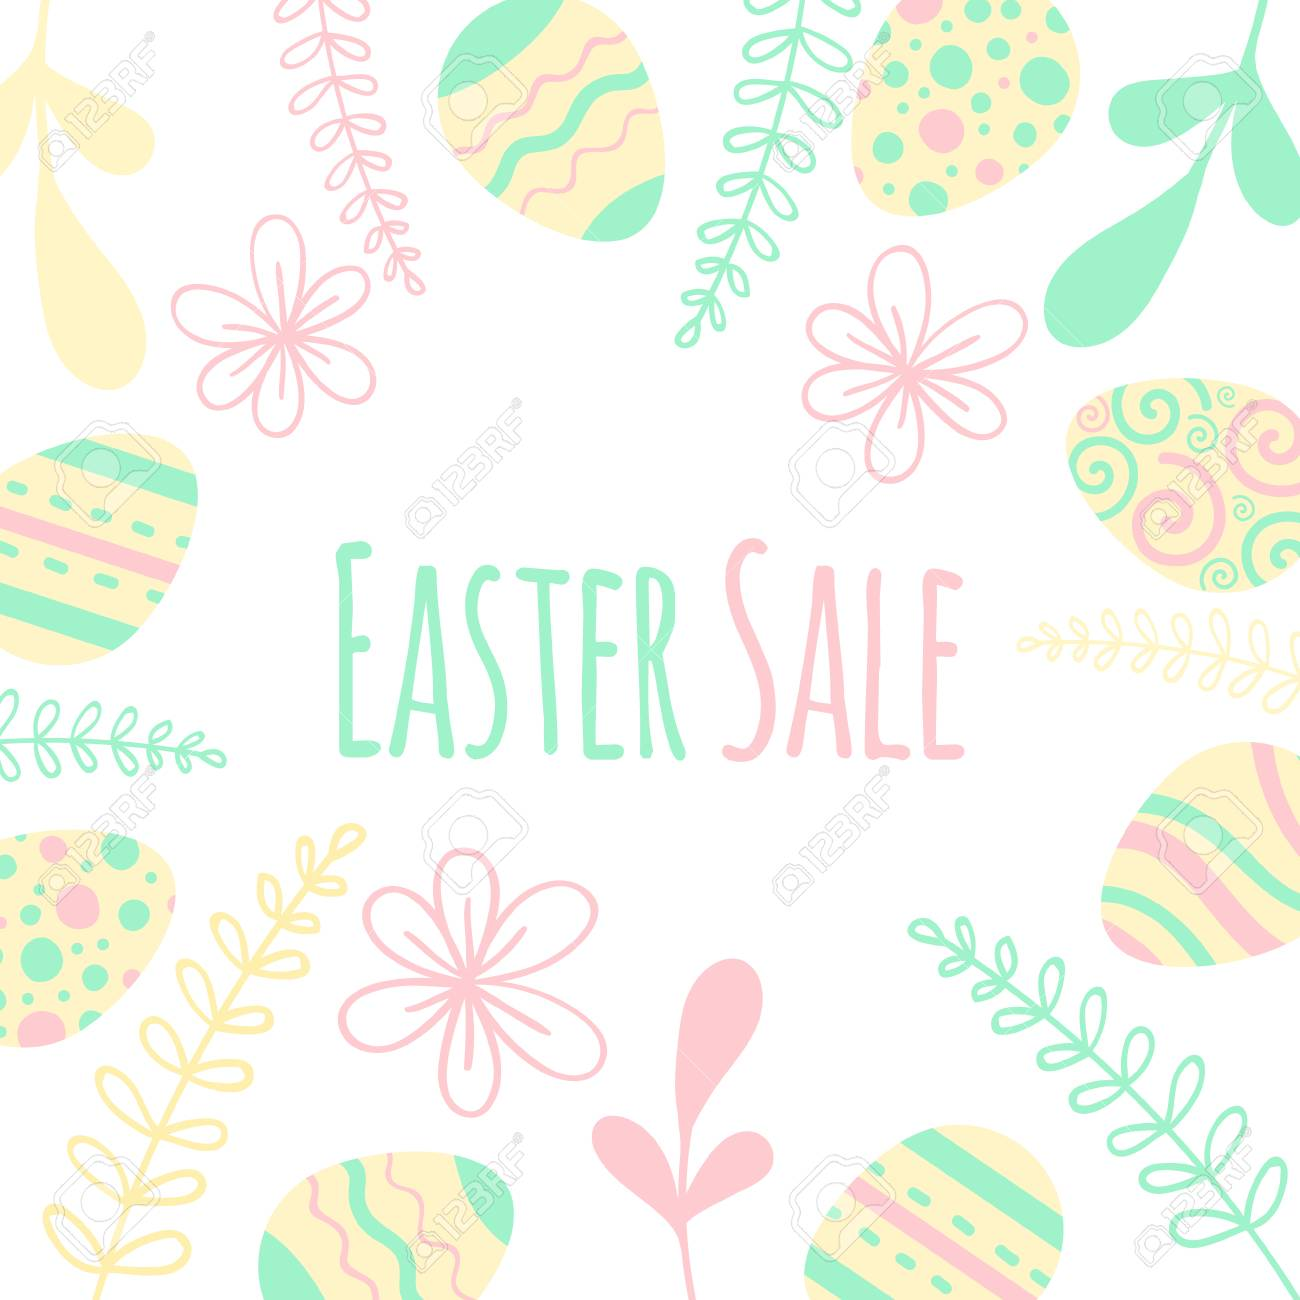 Easter sale banner with patterned eggs and flowers. - 97499117